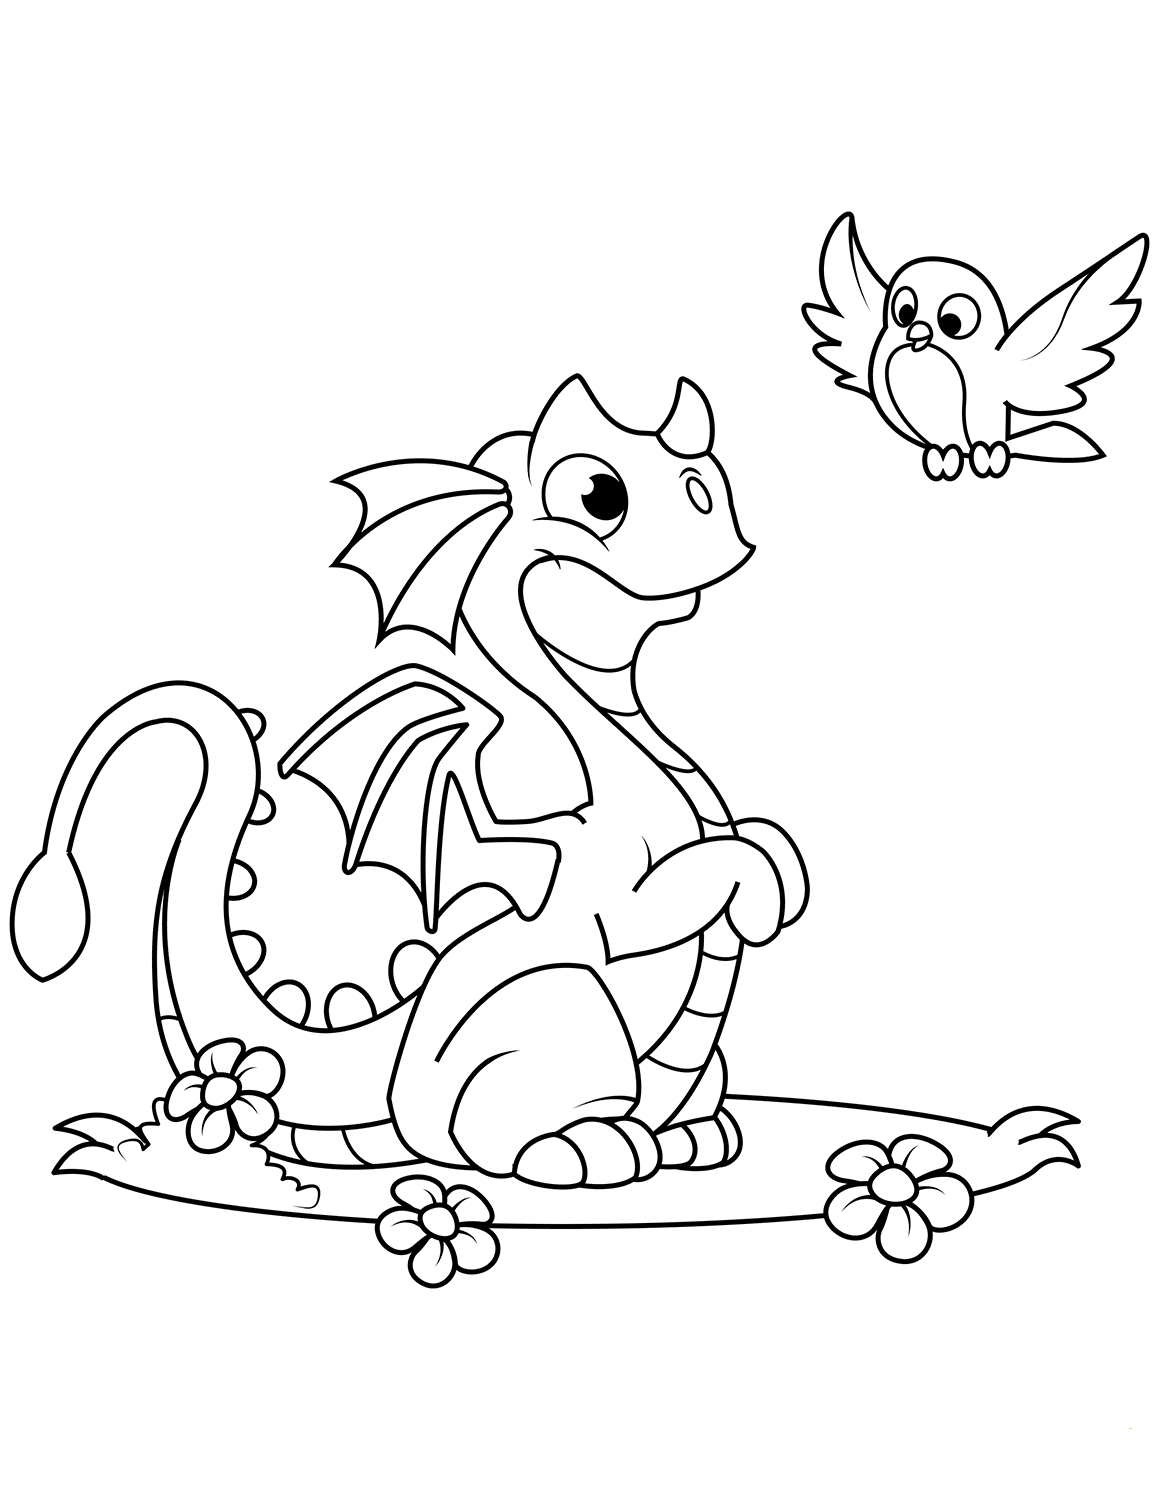 dragon color sheets coloring pages dragon coloring pages free and printable dragon color sheets